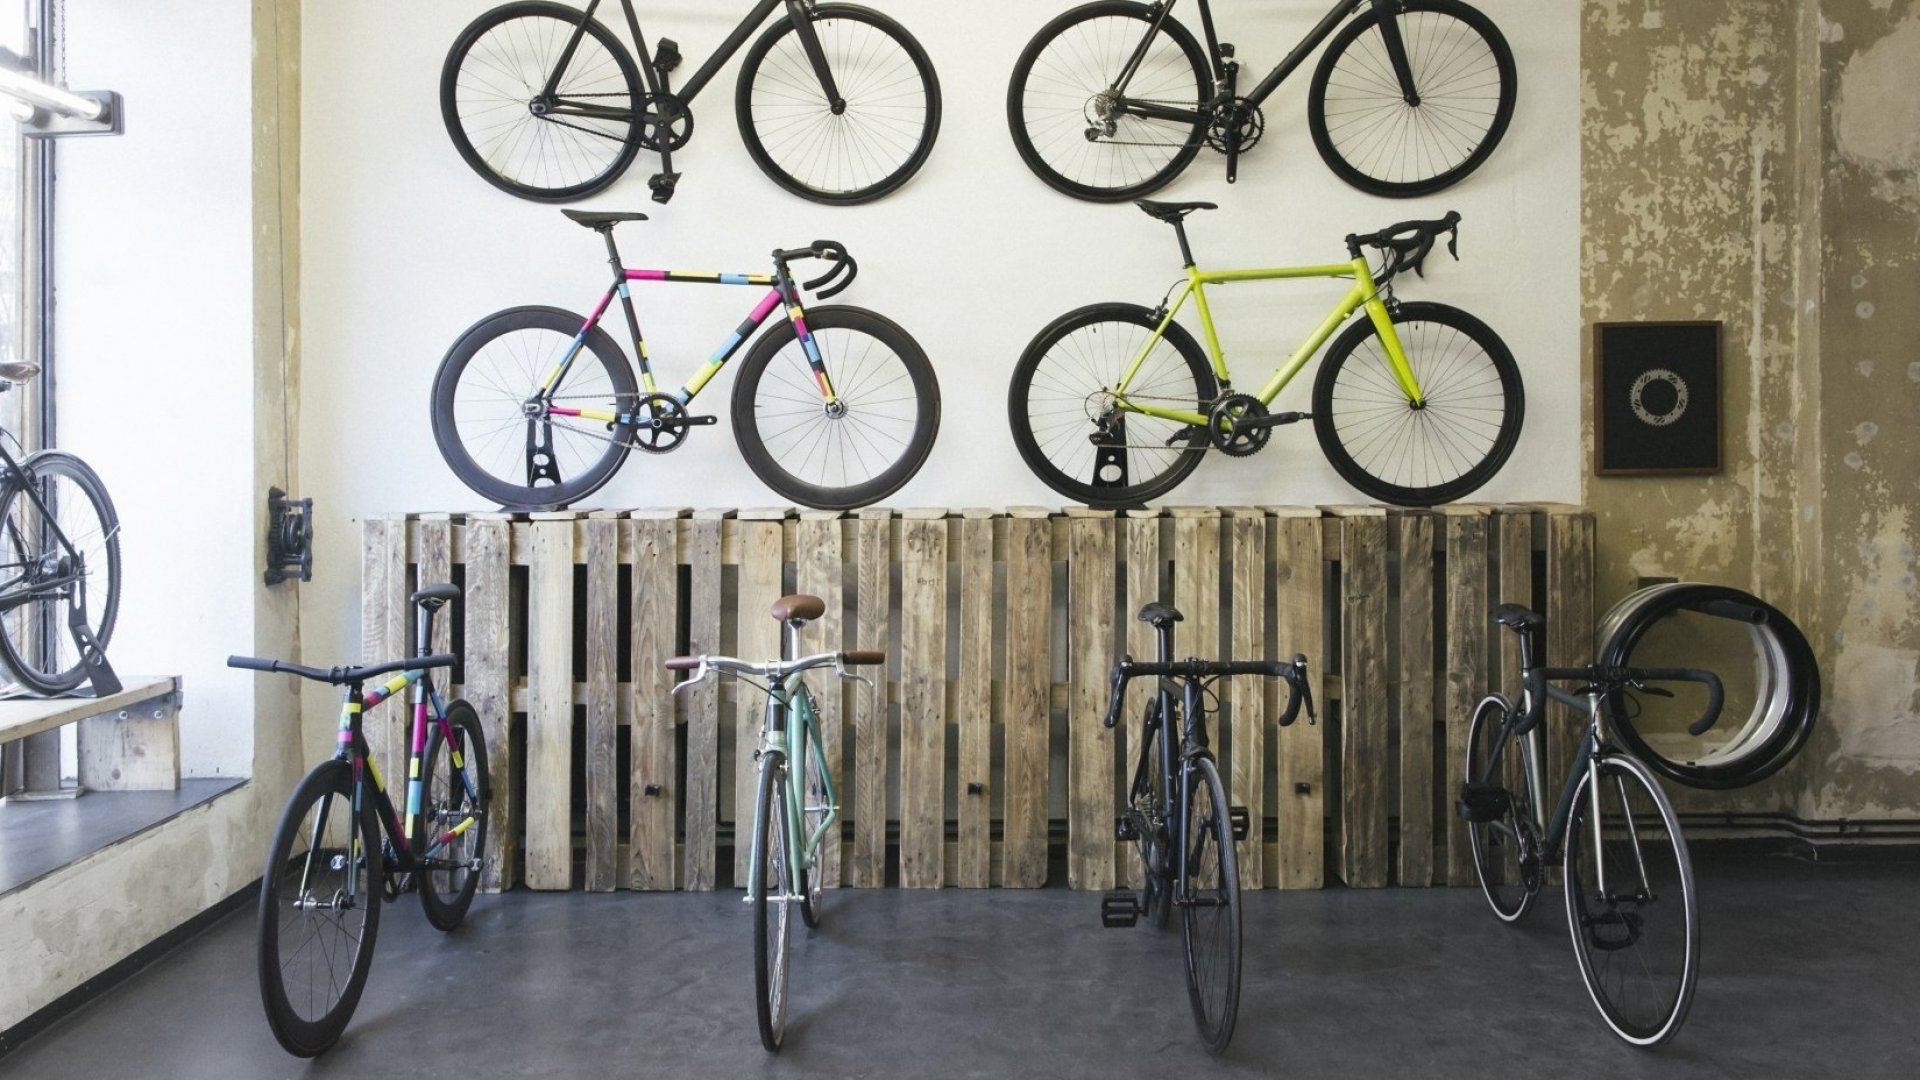 Bike Shops Are Doing Well Despite Shelter-in-Place